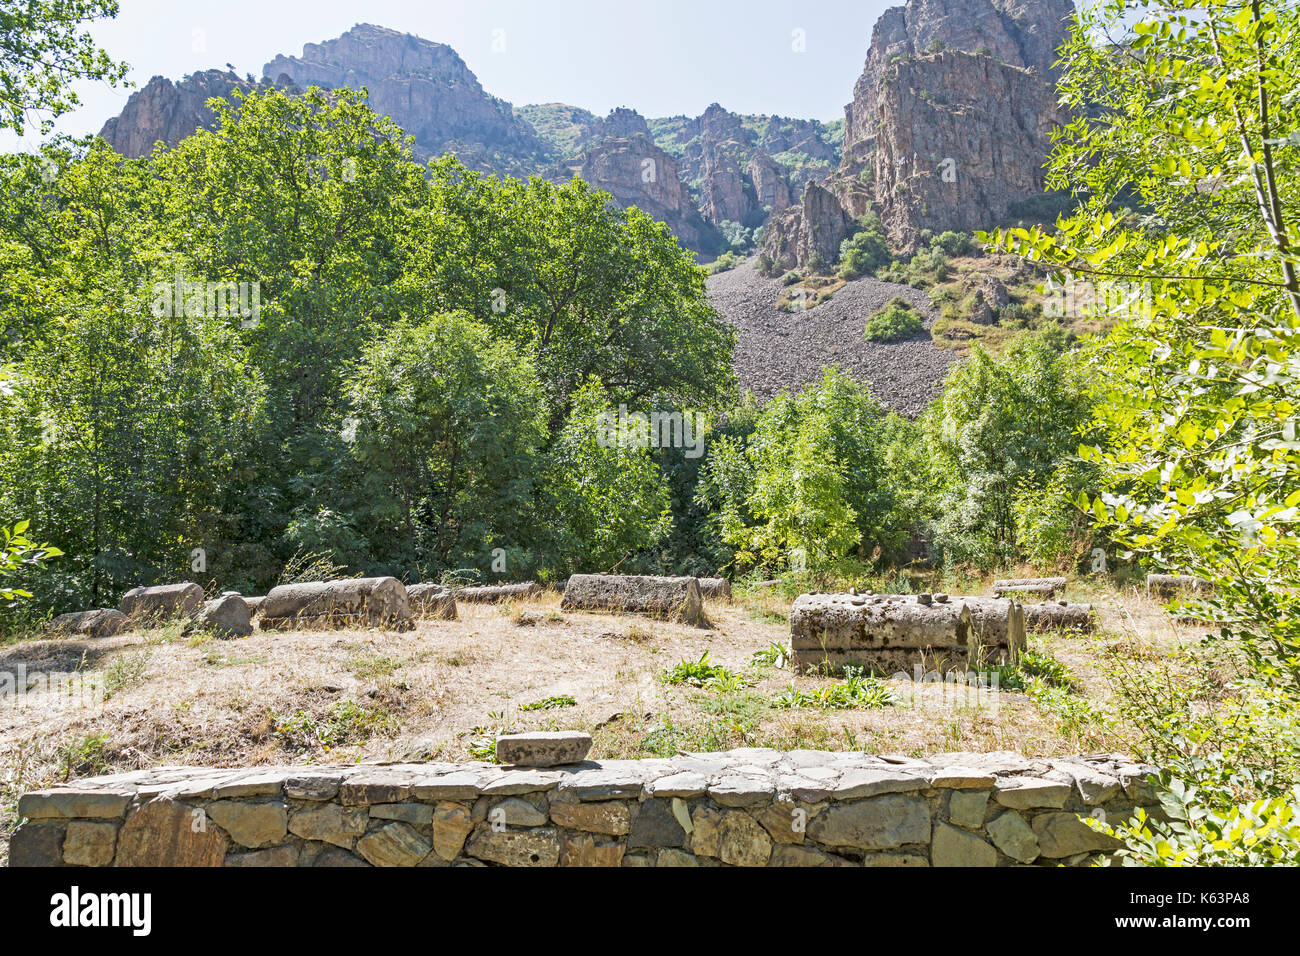 Ancient graves at the Yeghegis Jewish cemetery in Armenia. From the 13th and 14th century. Hebrew inscriptions are clearly visible on some graves. - Stock Image